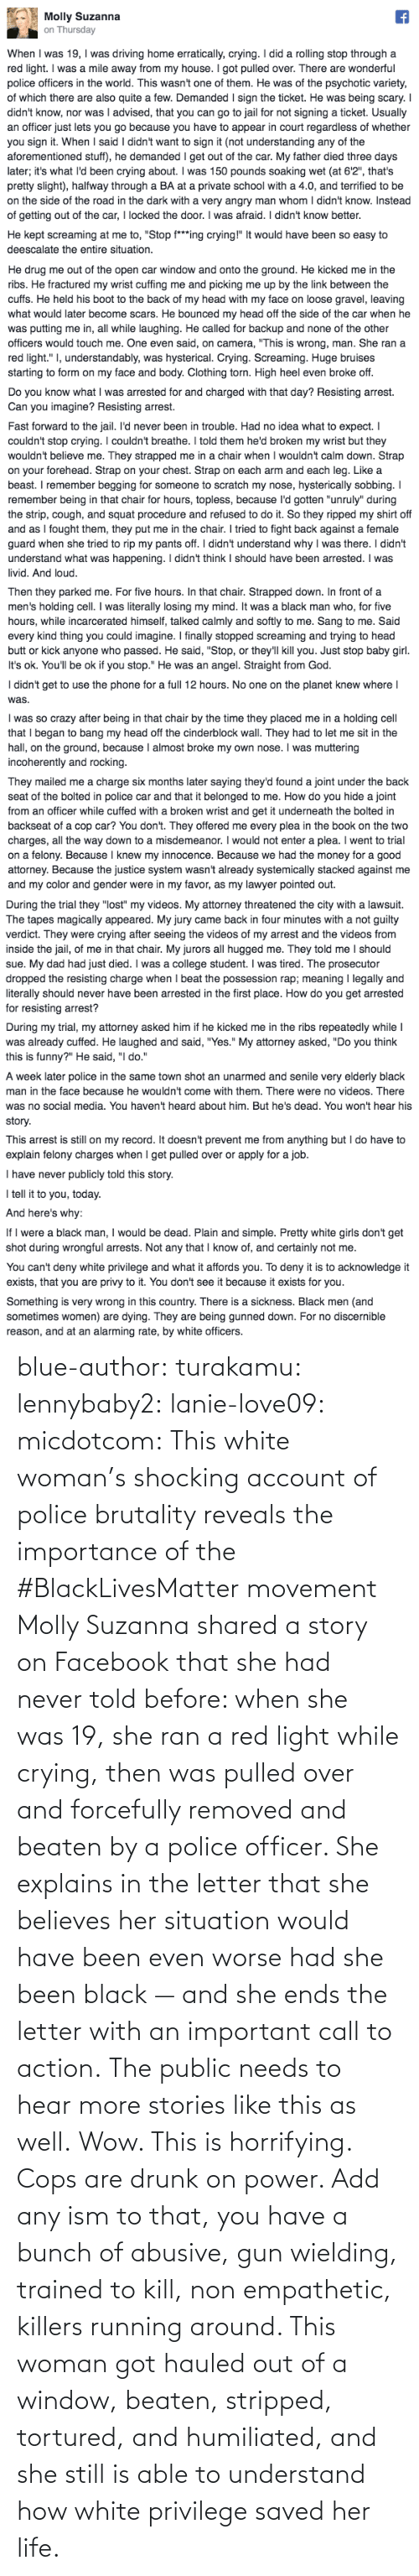 Out Of: blue-author: turakamu:  lennybaby2:  lanie-love09:  micdotcom:  This white woman's shocking account of police brutality reveals the importance of the #BlackLivesMatter movement Molly Suzanna shared a story on Facebook that she had never told before: when she was 19, she ran a red light while crying, then was pulled over and forcefully removed and beaten by a police officer. She explains in the letter that she believes her situation would have been even worse had she been black — and she ends the letter with an important call to action.  The public needs to hear more stories like this as well.  Wow. This is horrifying.  Cops are drunk on power. Add any ism to that, you have a bunch of abusive, gun wielding, trained to kill, non empathetic, killers running around.    This woman got hauled out of a window, beaten, stripped, tortured, and humiliated, and she still is able to understand how white privilege saved her life.